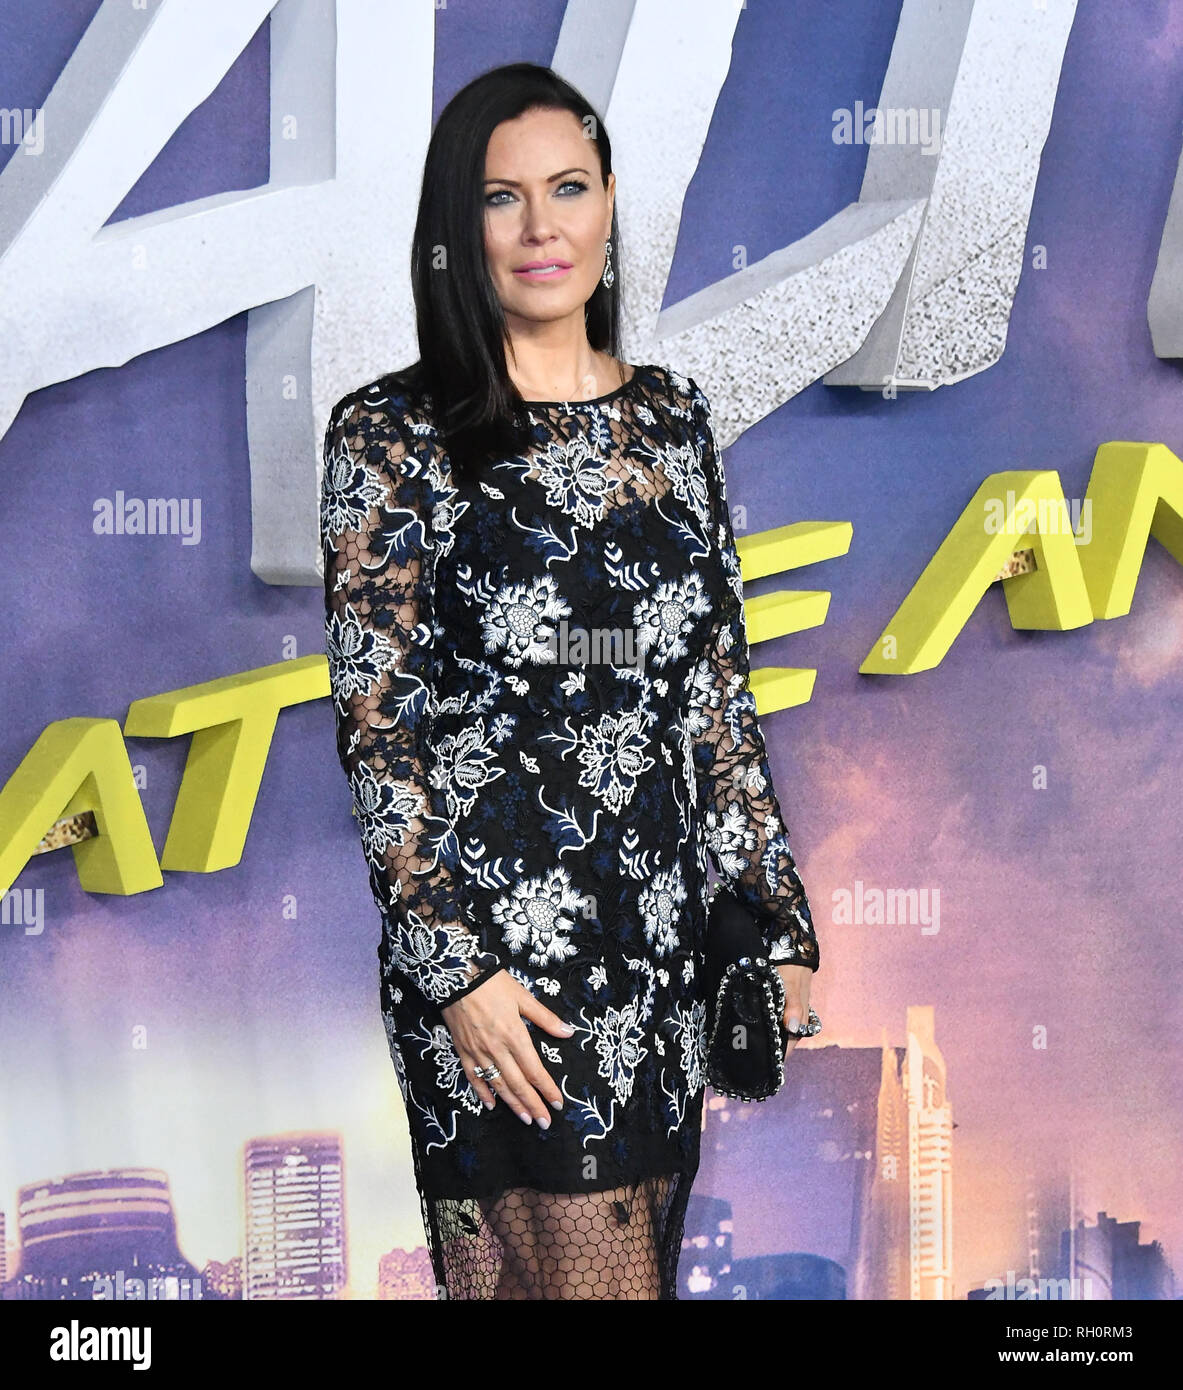 London, UK. 31st January, 2019. Linzi Stoppard at UK premiere of the adaptation of Alita, Battle Angel, a Manga comic which tells the story of a female cyborg discovered in a junk yard by a scientist, at Odeon Leicester Square Credit: Nils Jorgensen/Alamy Live News - Stock Image